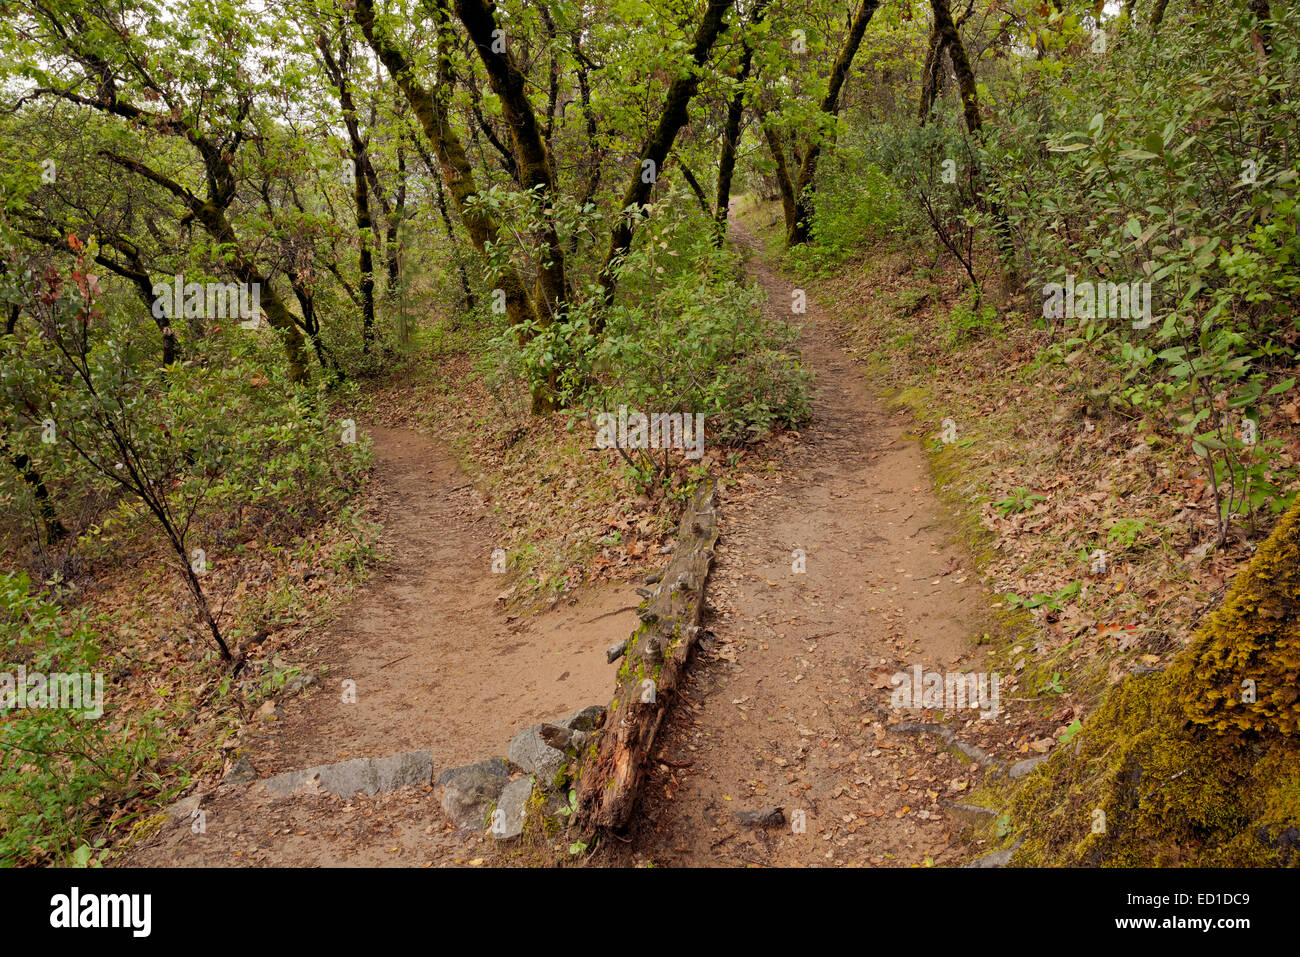 CA02614-00...CALIFORNIA -  A switchback on the Monroe Ridge Trail in the Marshall Gold Discovery State Historic - Stock Image